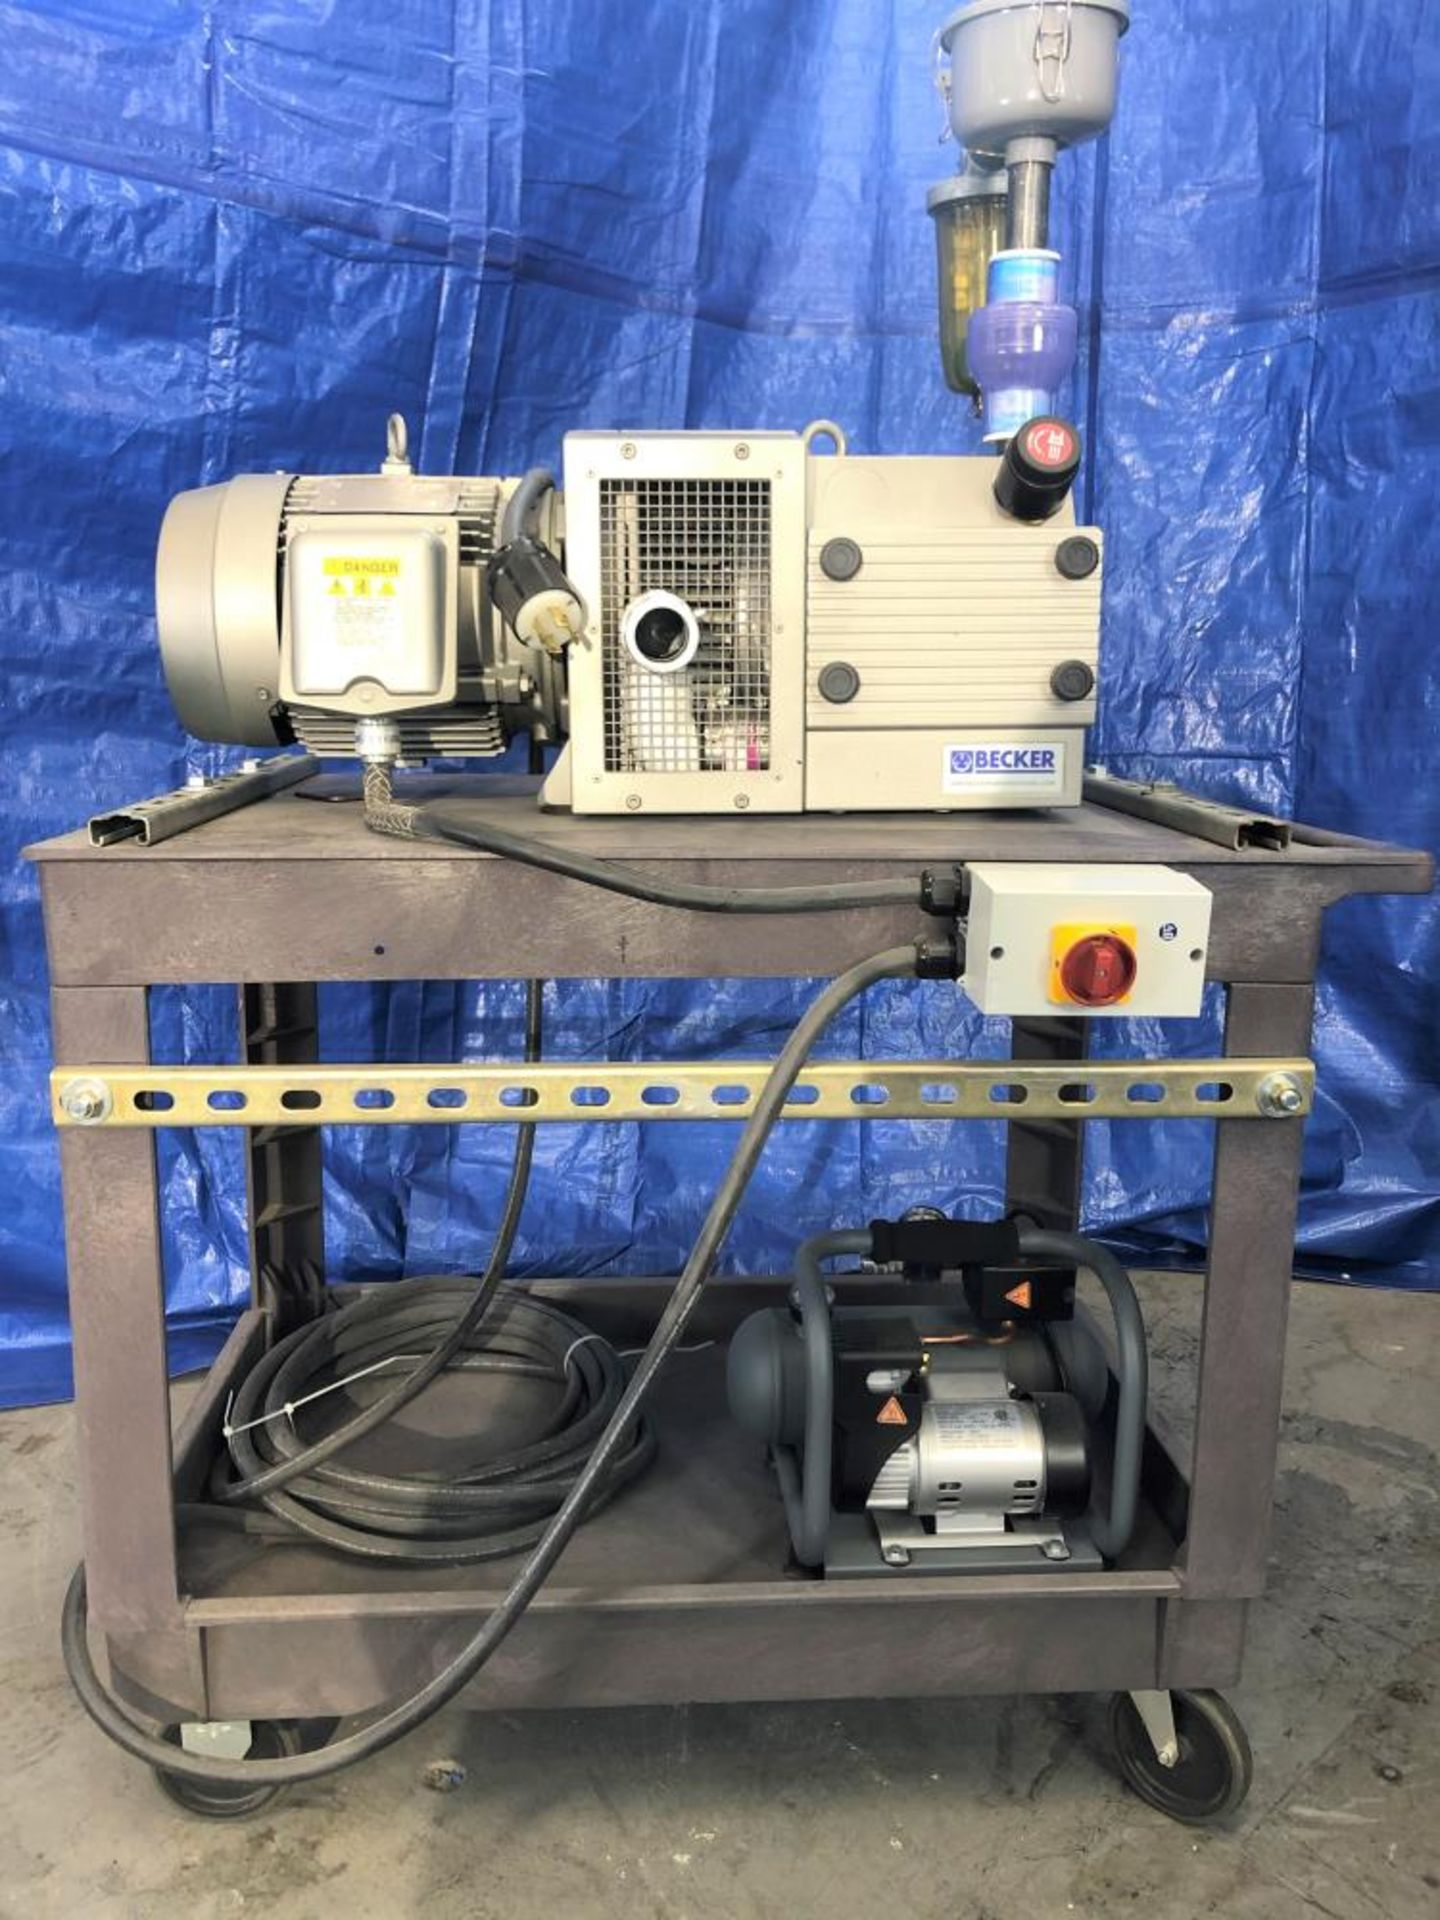 Used-Ultrasonic Ethanol Extractor, 20lb High Purity Extraction System for CBD/THC Extraction - Image 6 of 8